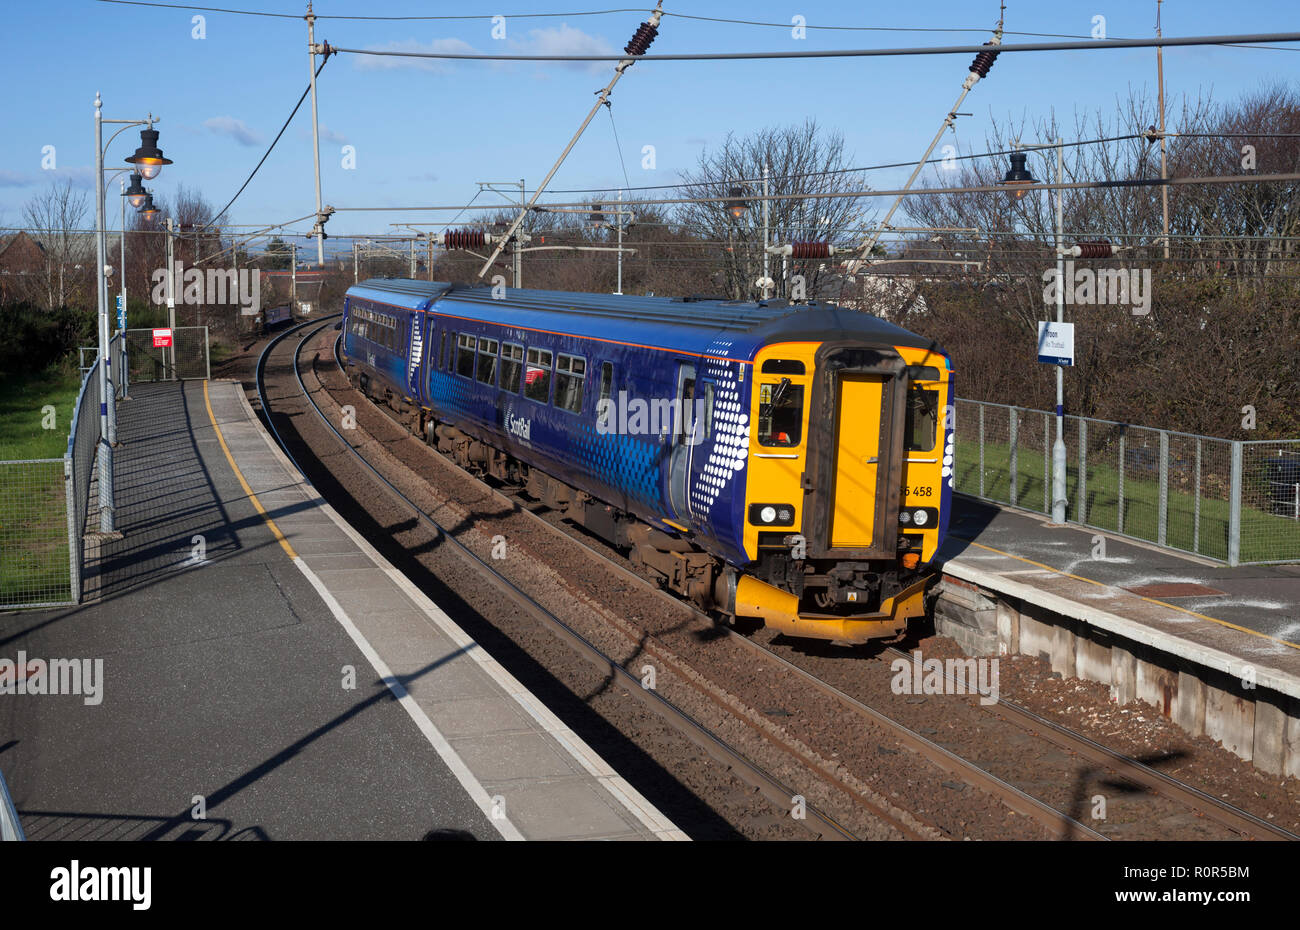 A Abellio Scotrail  class 156 diesel 2 carriage sprinter train at Troon railway station, Ayrshire - Stock Image